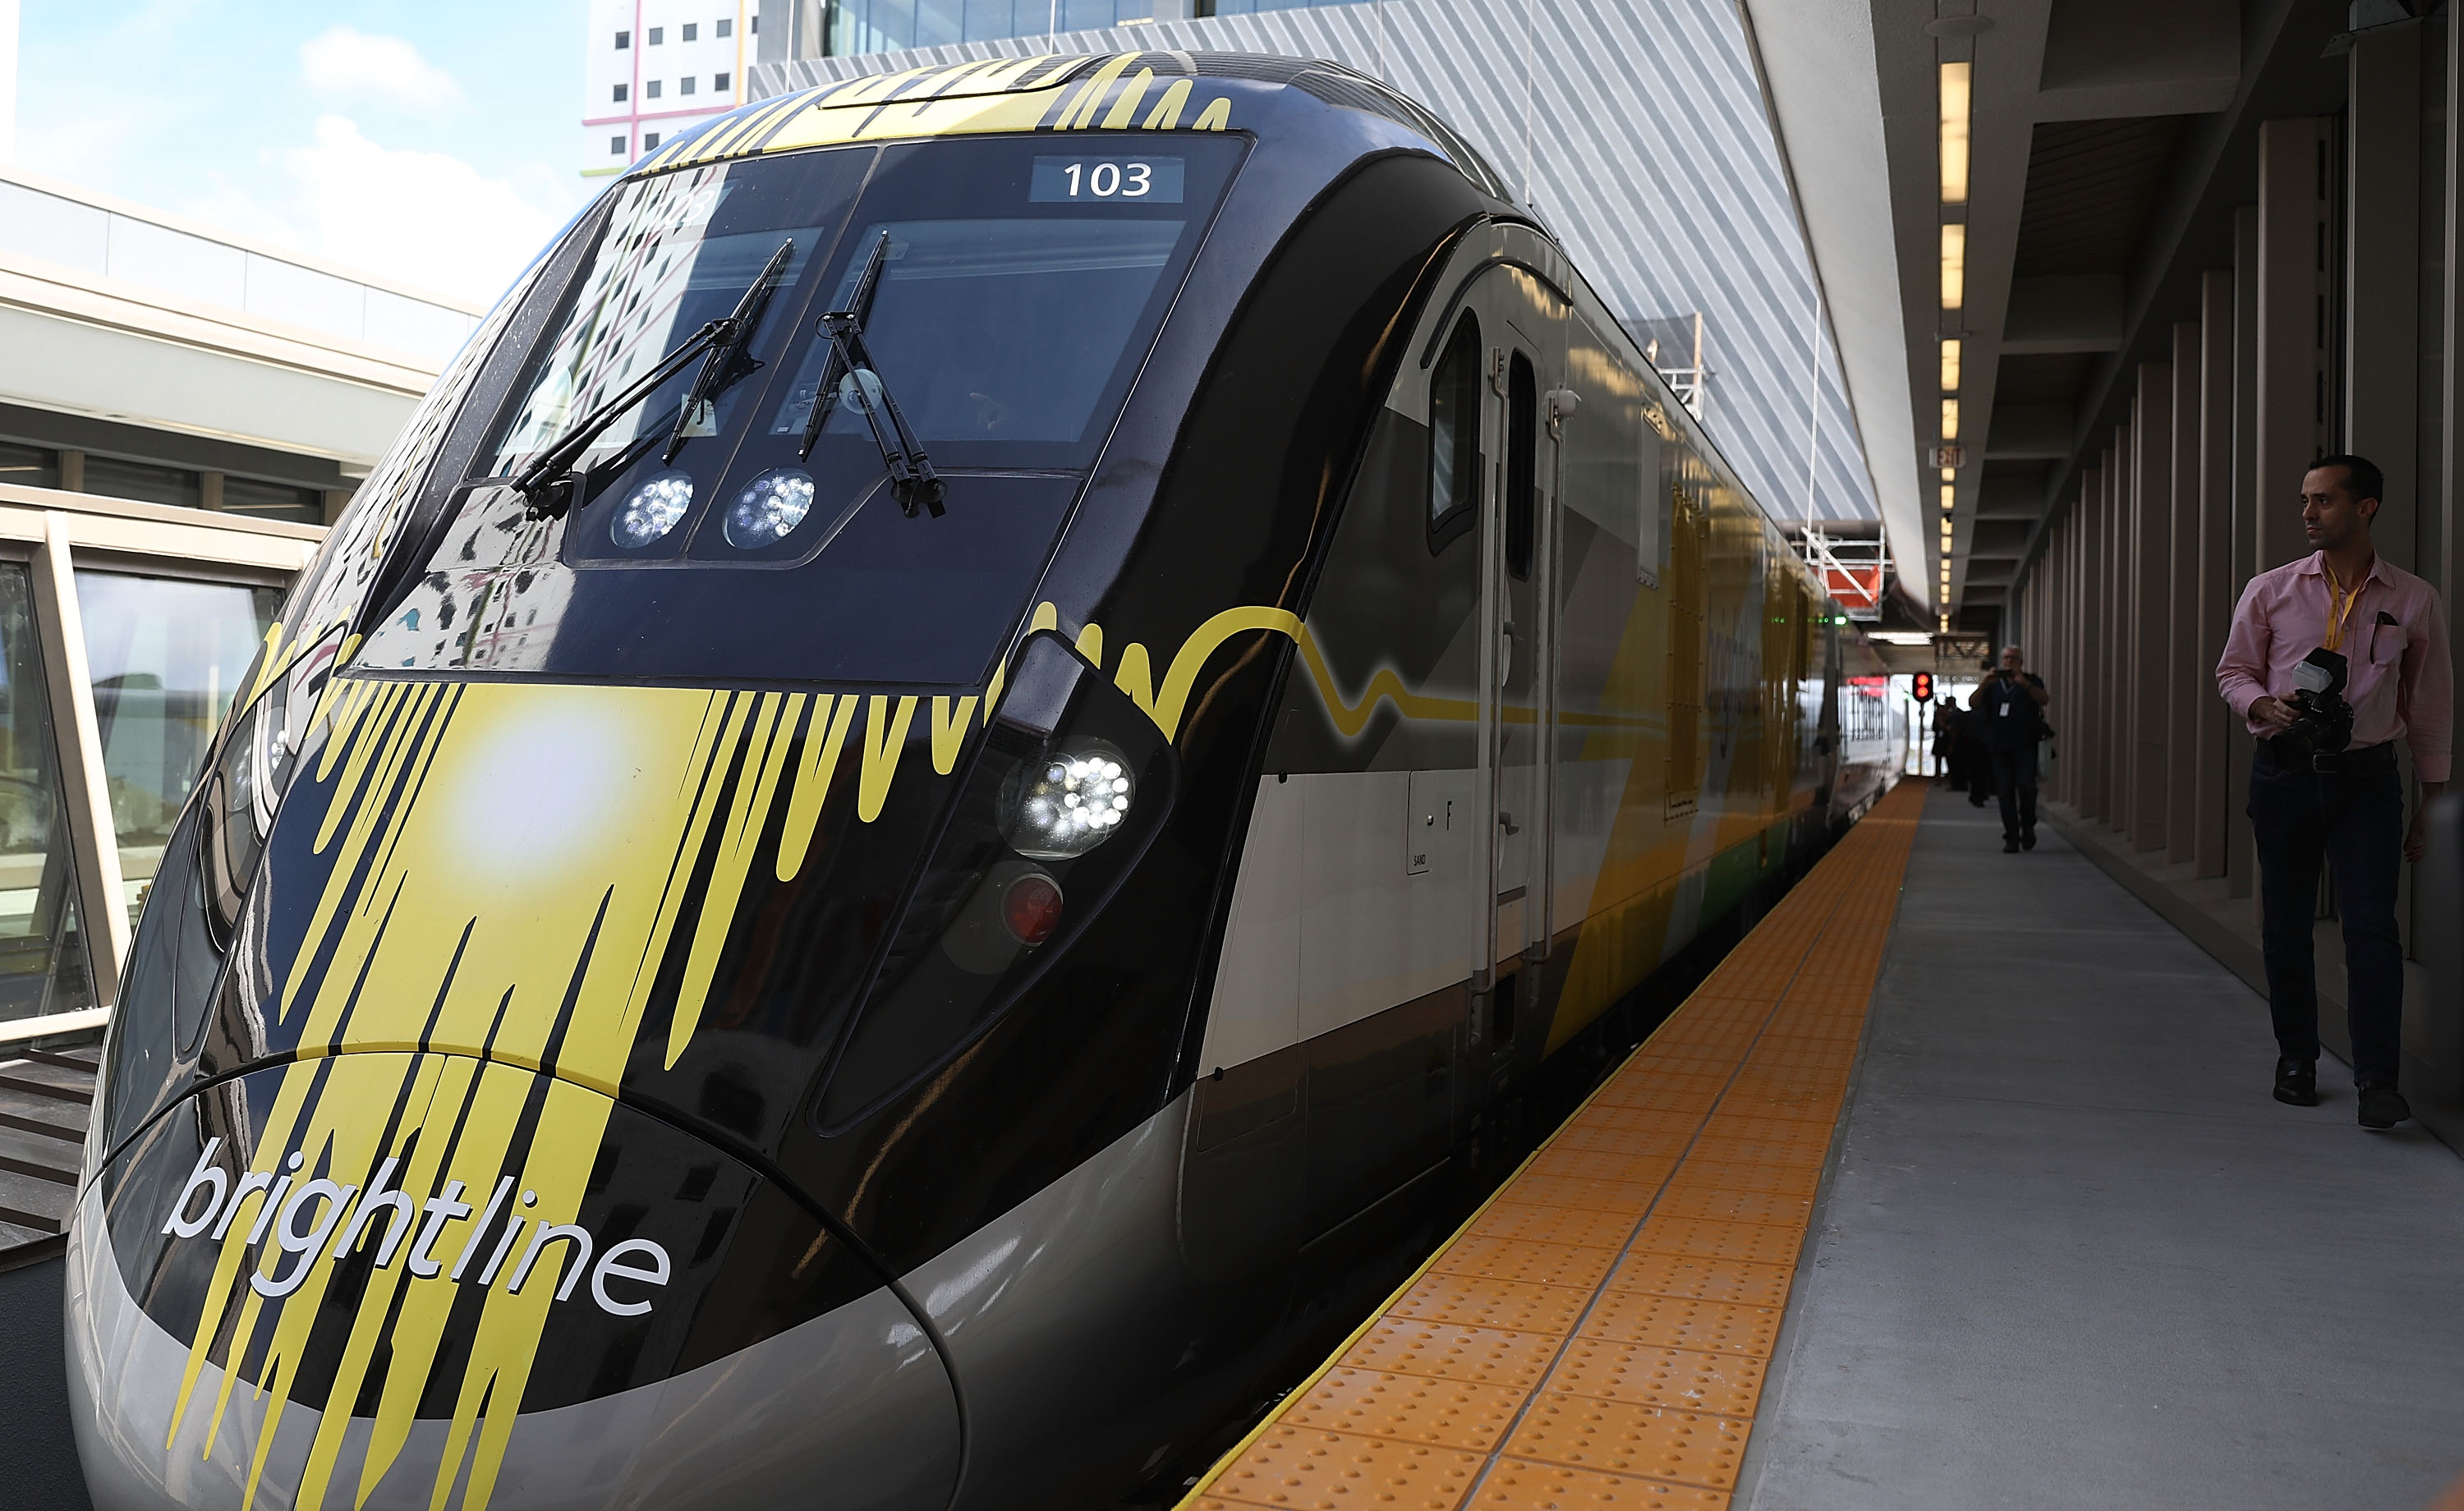 The Brightline train waits at the new MiamiCentral transit terminal on May 11, 2018.